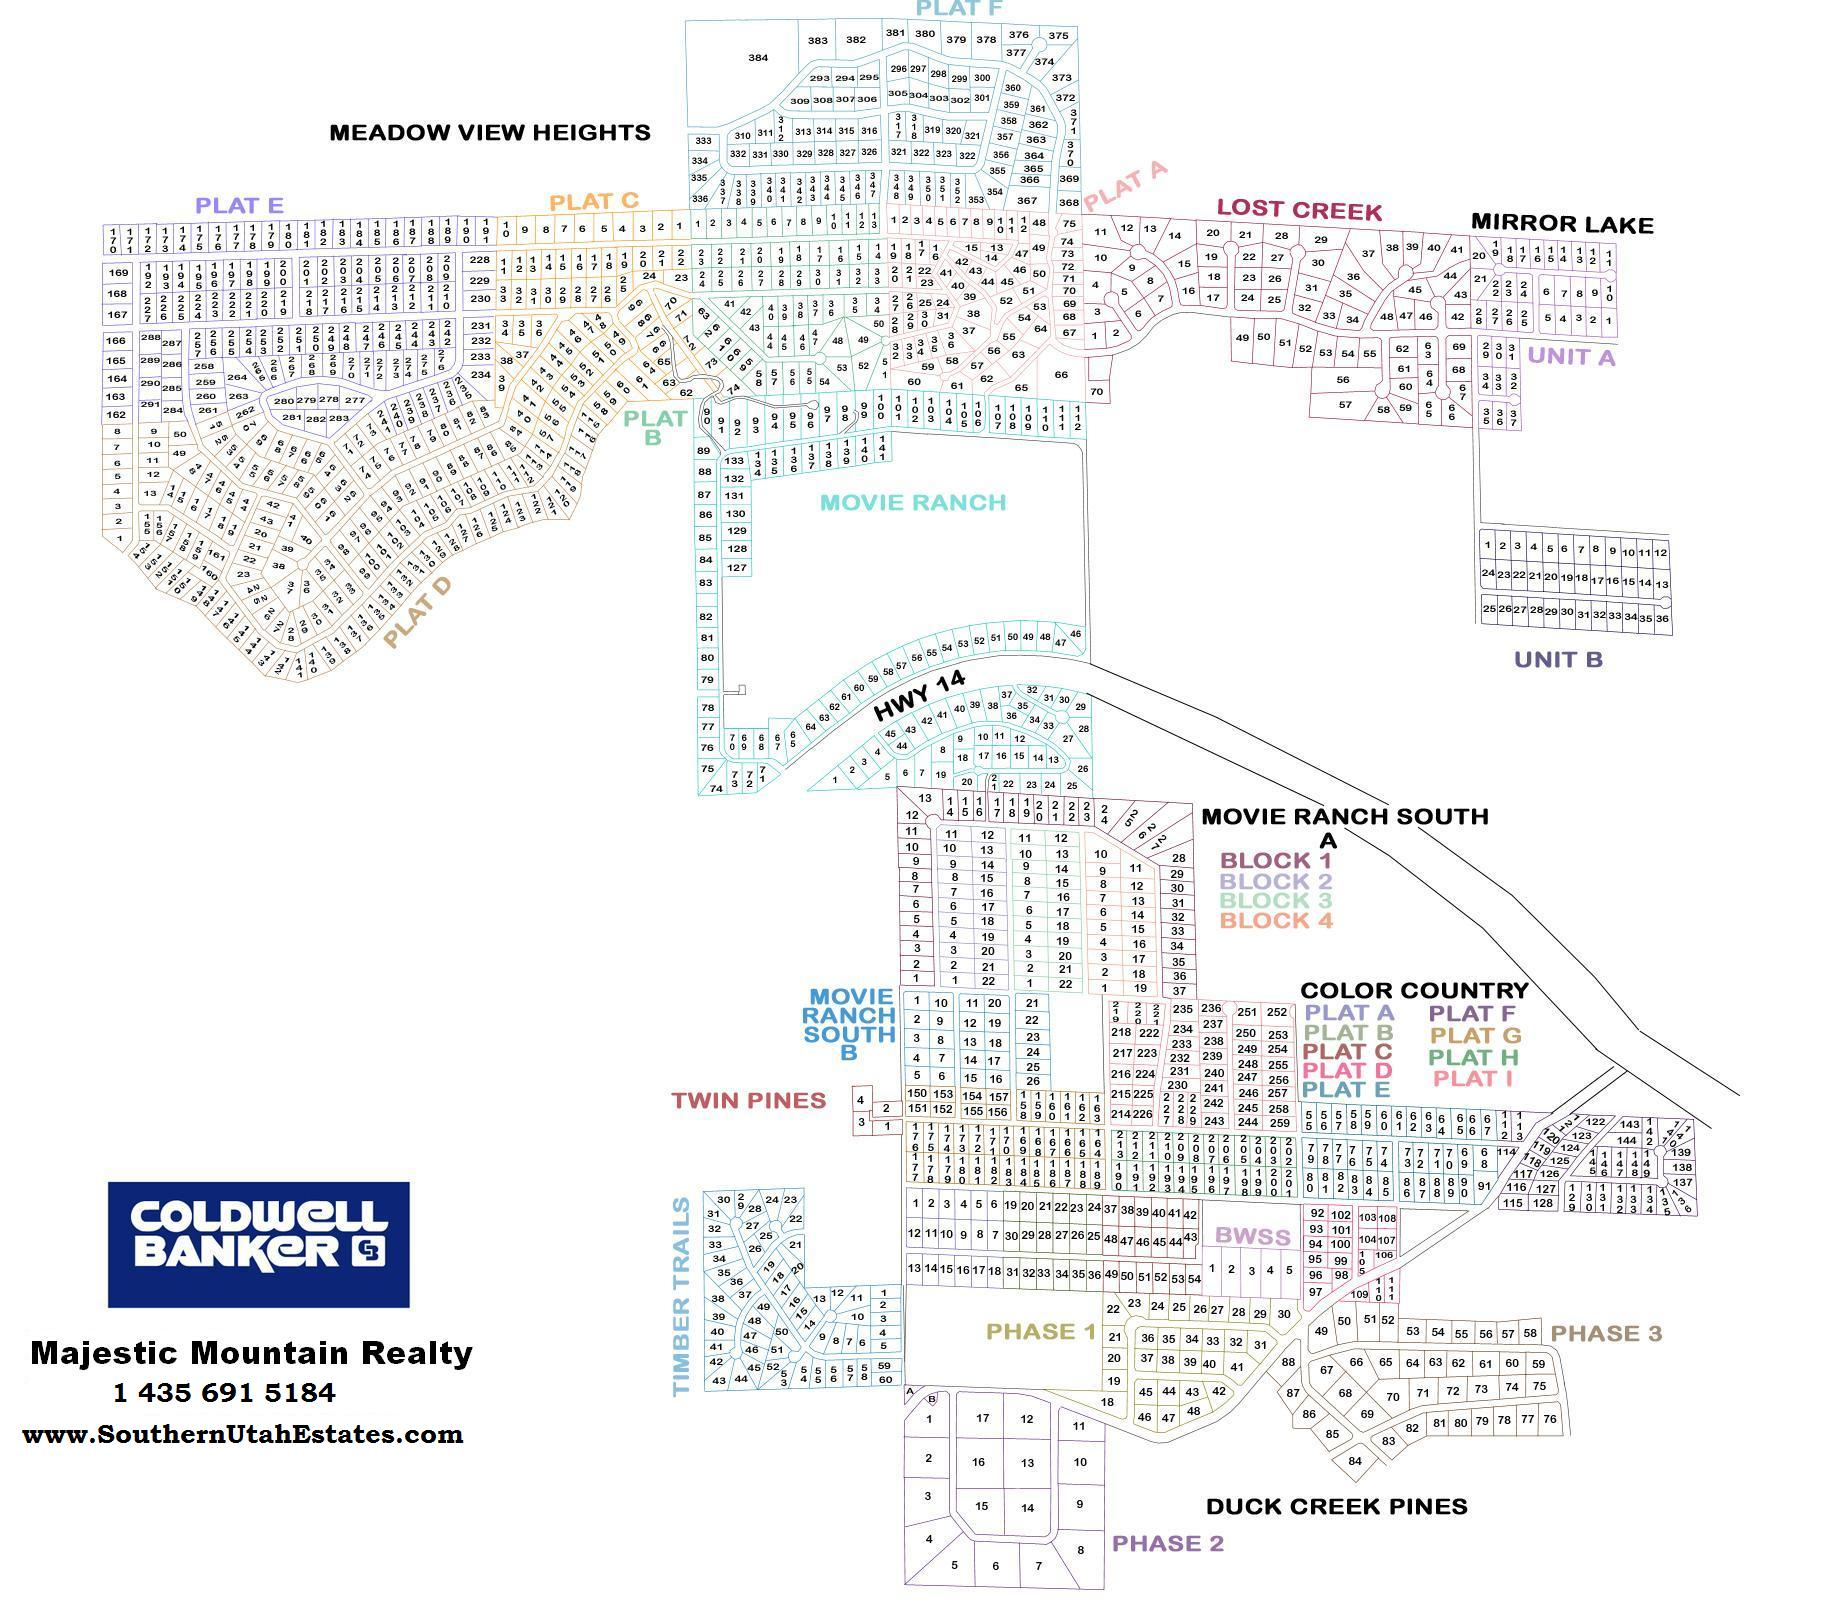 Southern Utah Real Estate Area Maps For The Cedar City Area Mountains